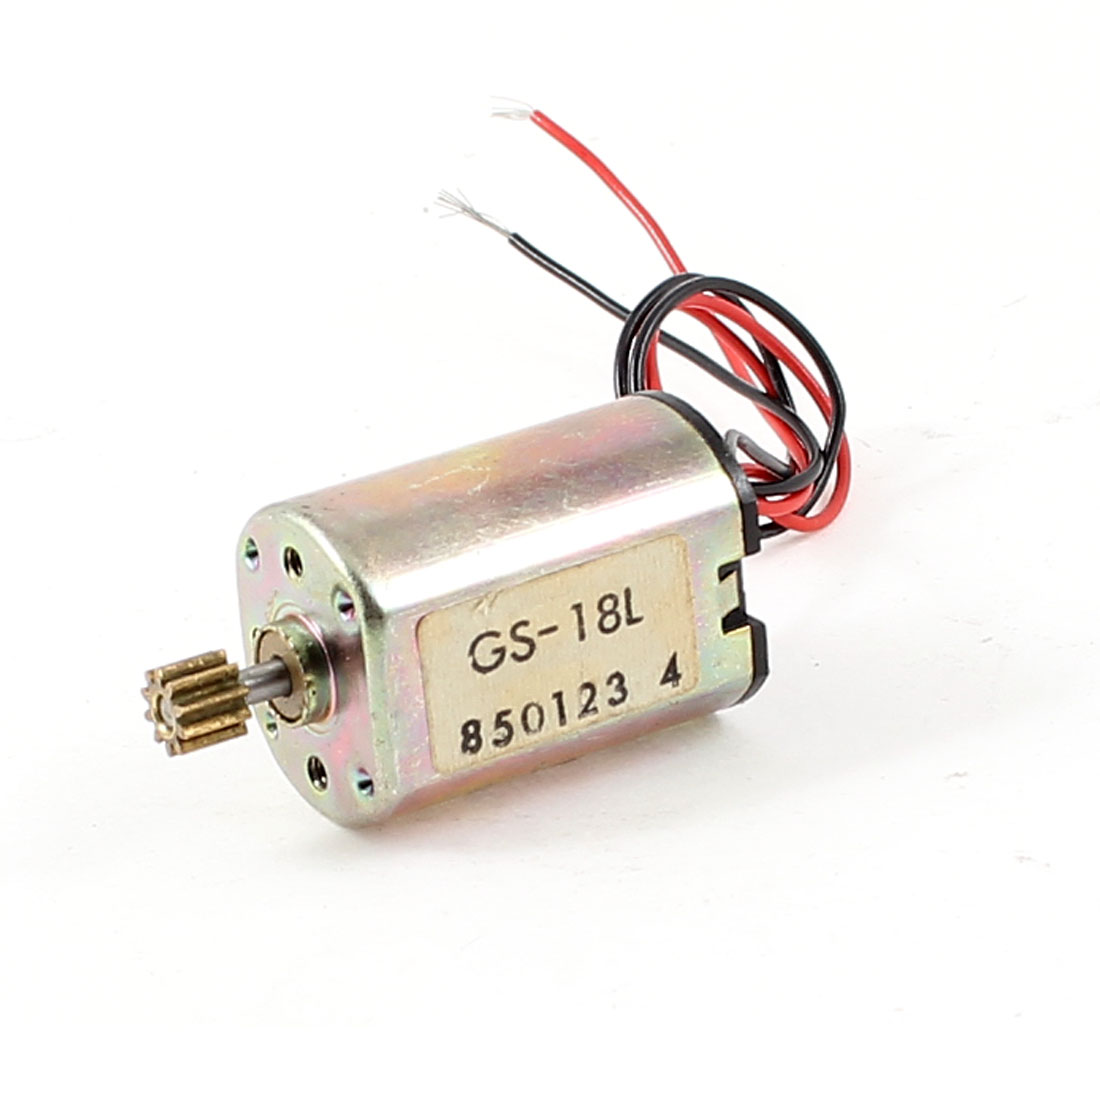 6-12V 2850-11800 RPM Speed Mini Magnetic Cylinder Electric DC Motor for DIY Toy